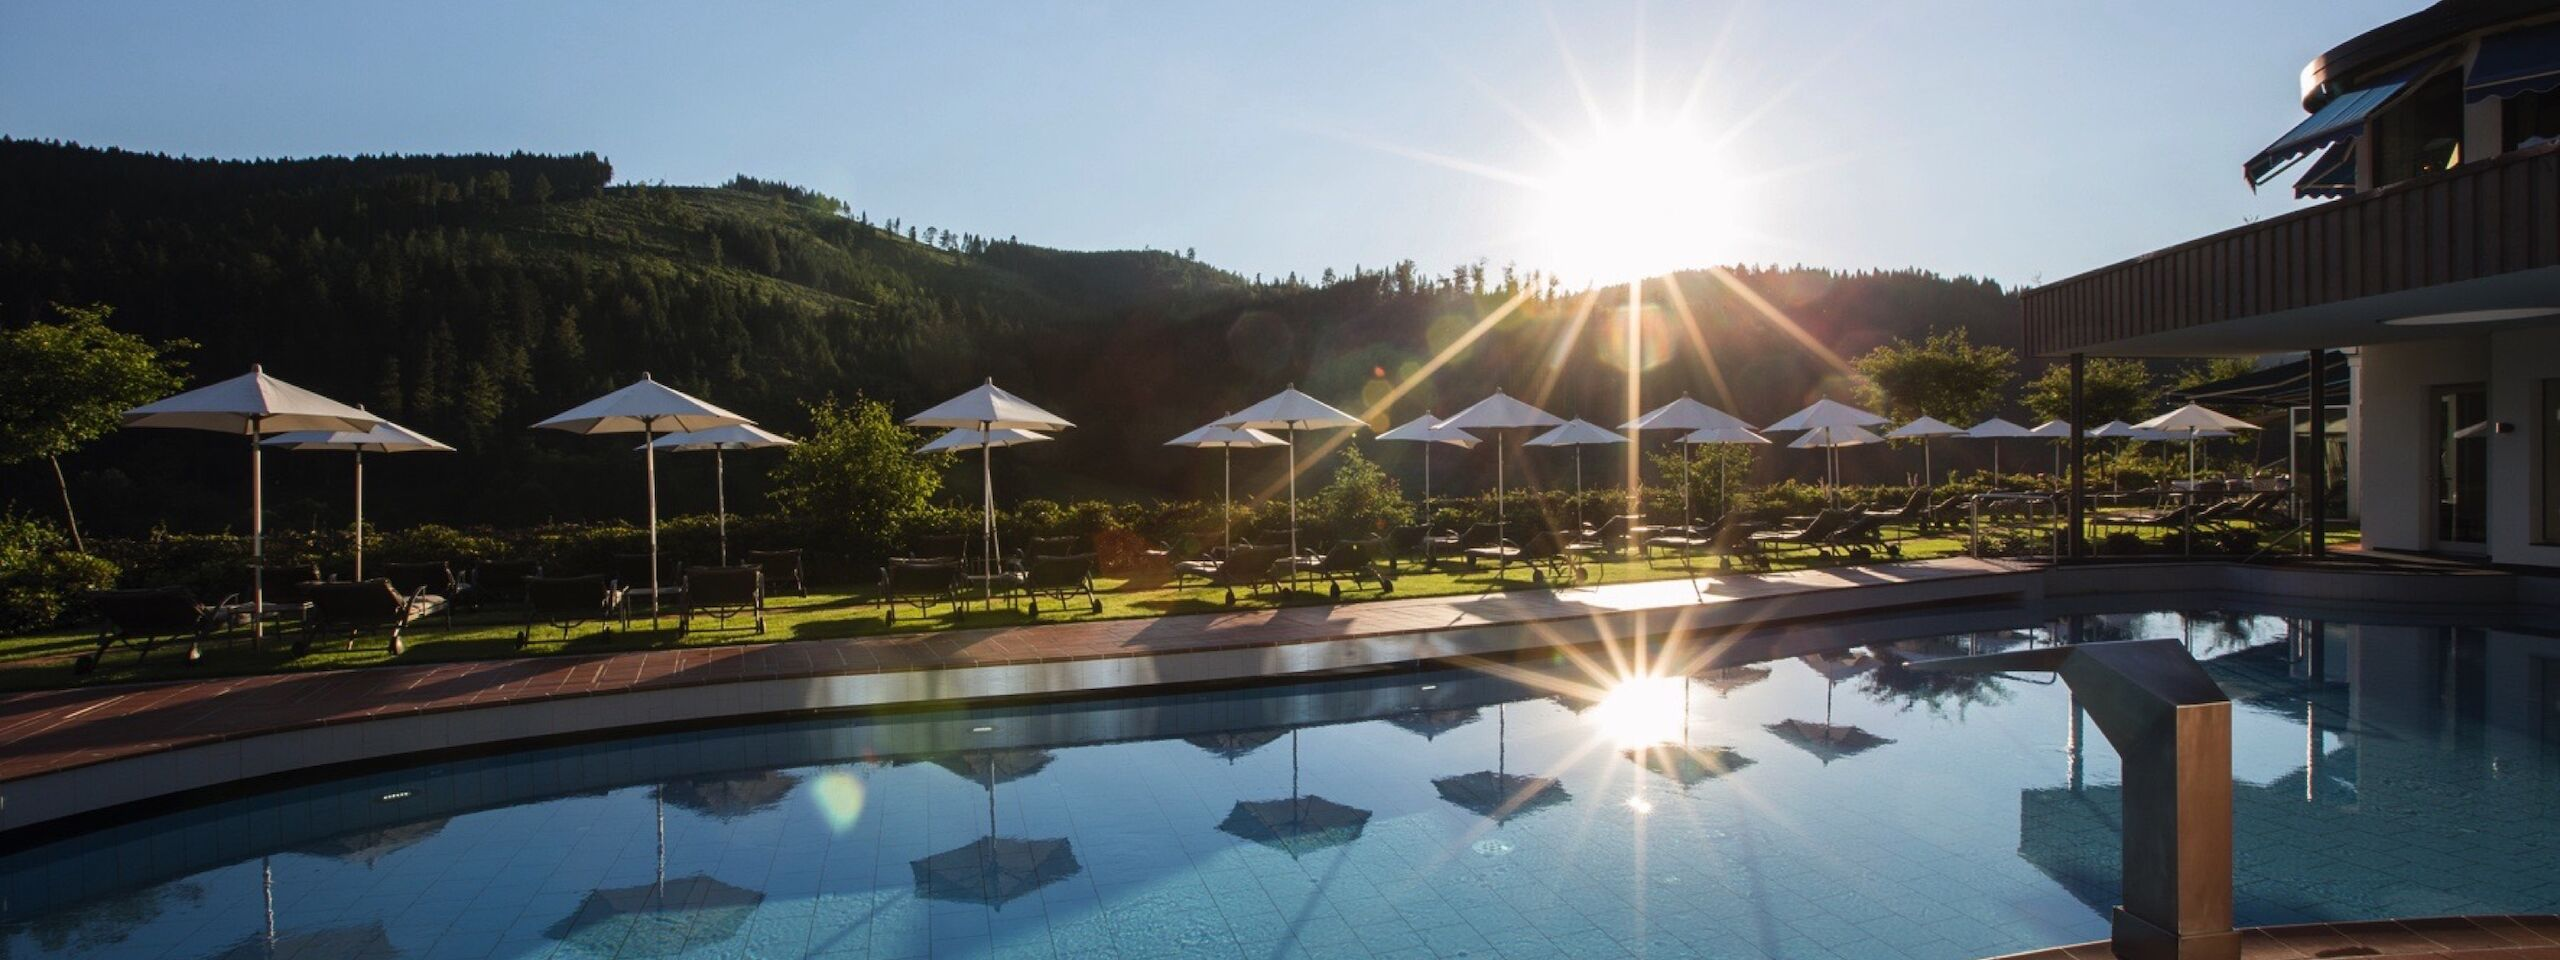 Traube Tonbach Wellness Pool 5